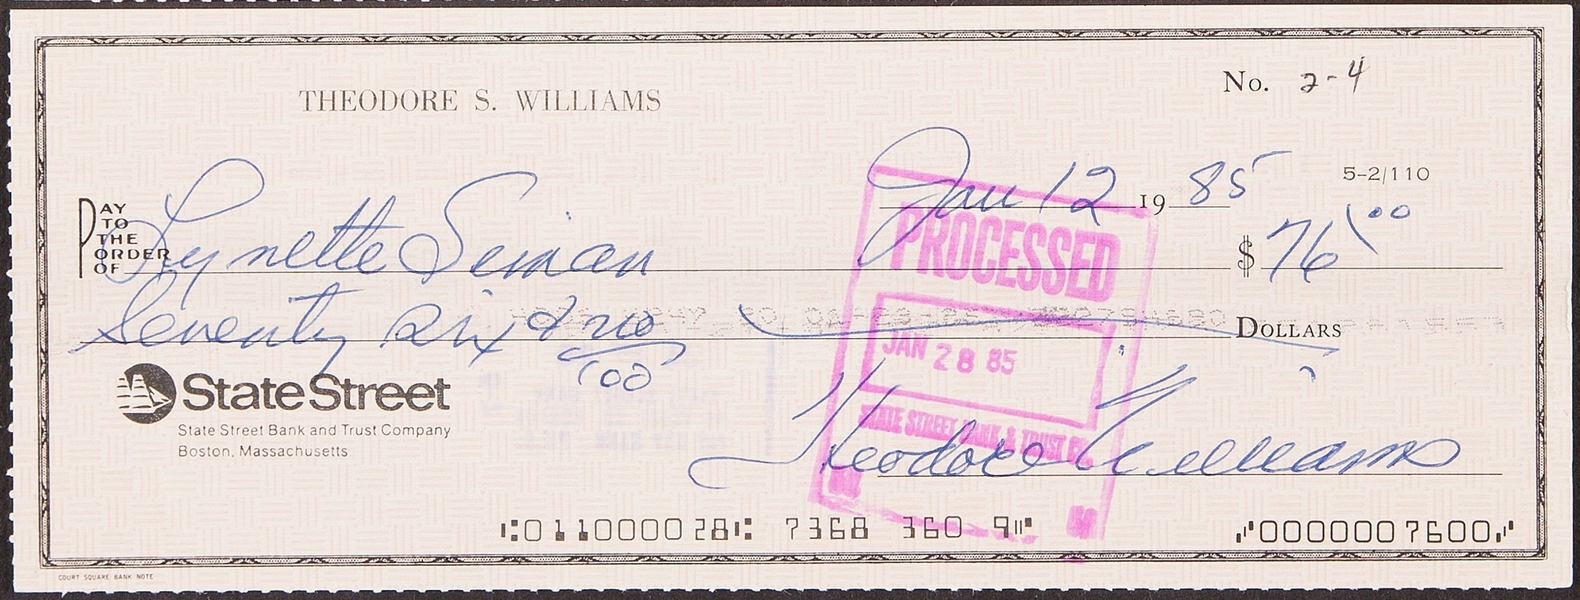 TED WILLIAMS SIGNED PERSONAL CHECK CLAUDIA WILLIAMS COA